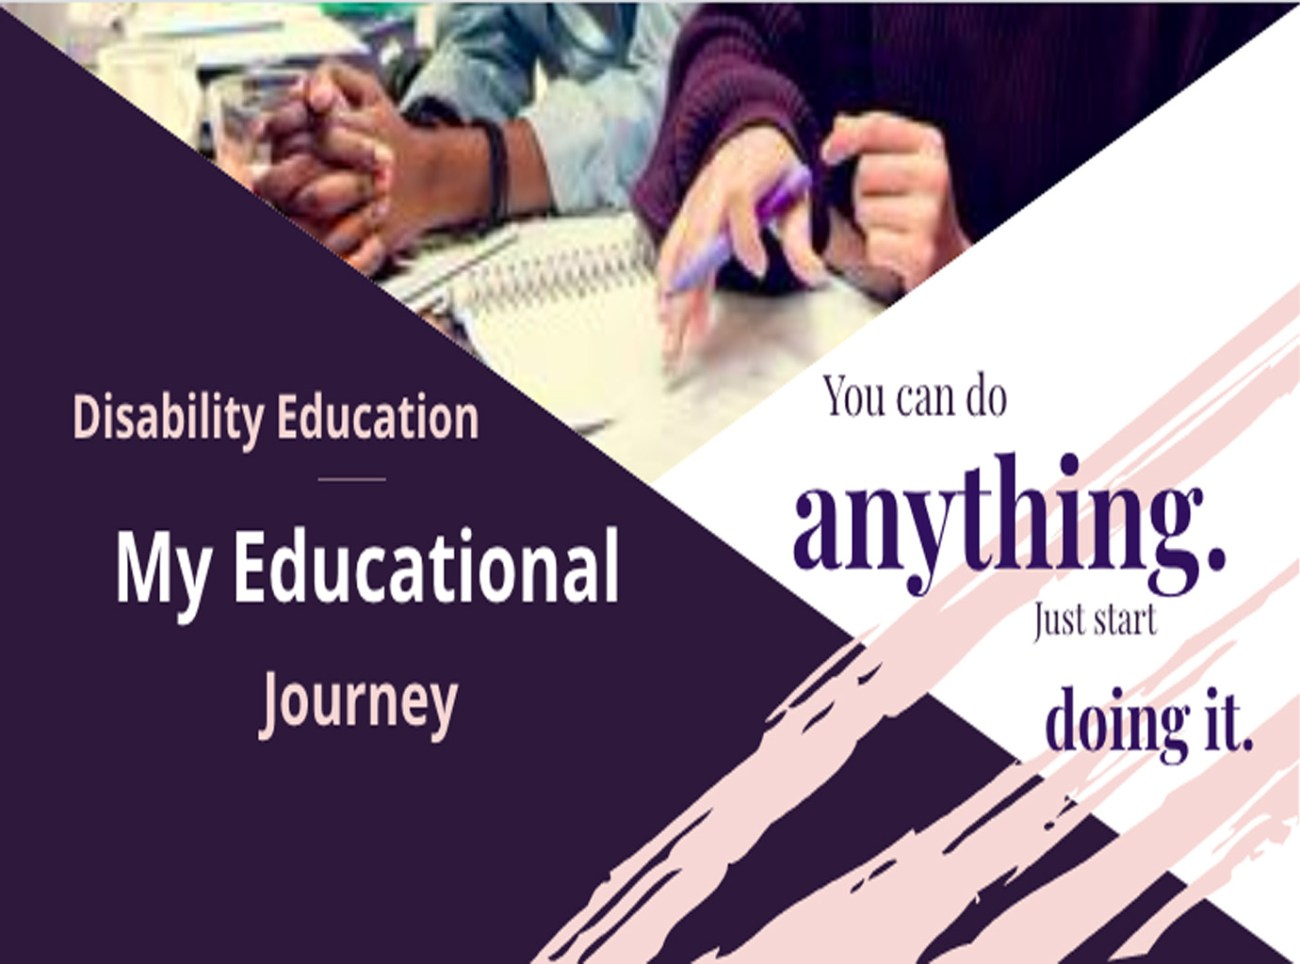 Disability Education post